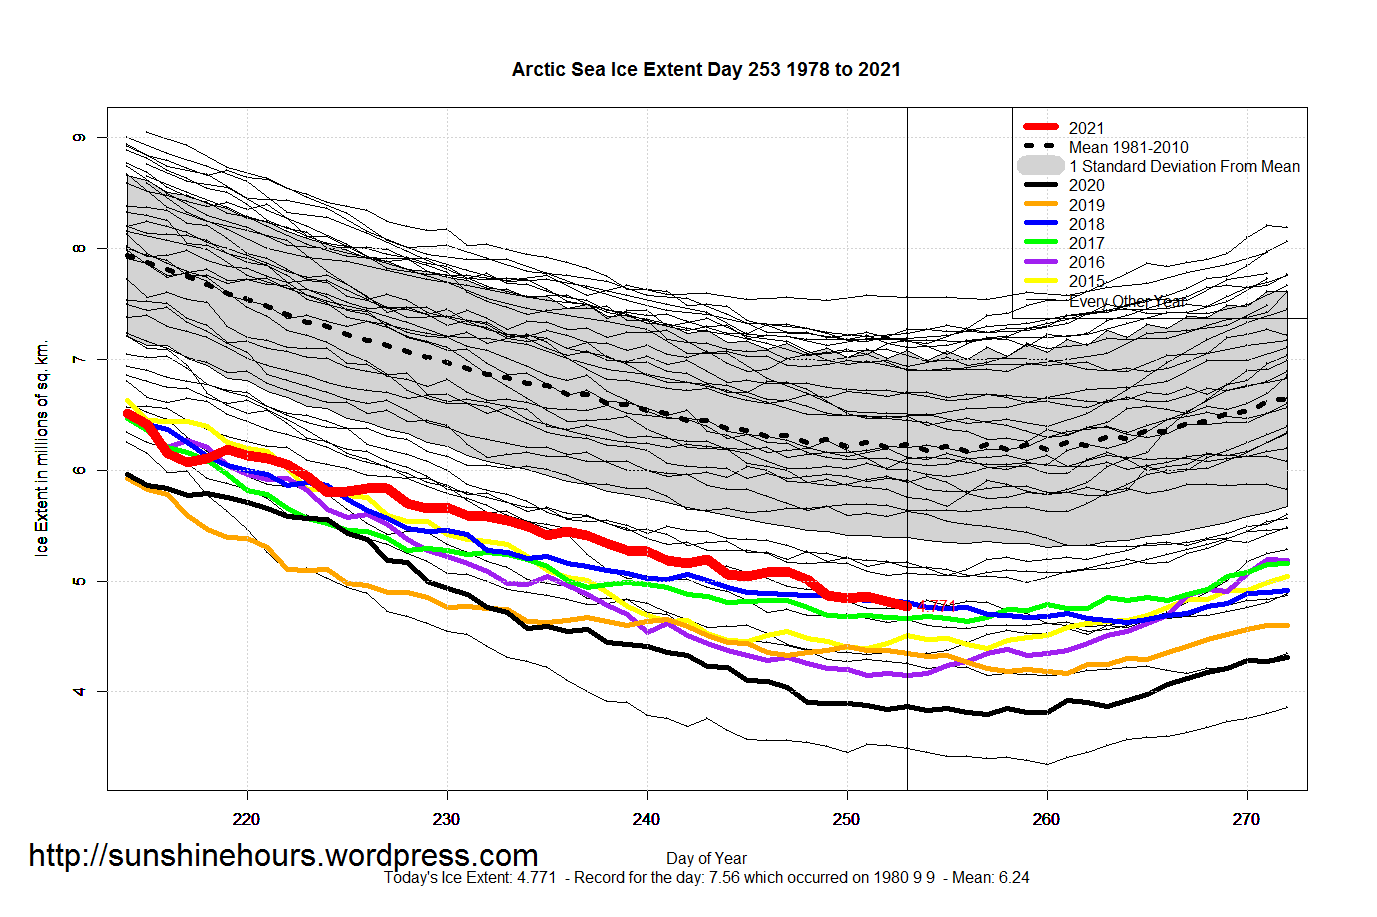 Arctic_Sea_Ice_Extent_Zoomed_2021_Day_253_1981-2010